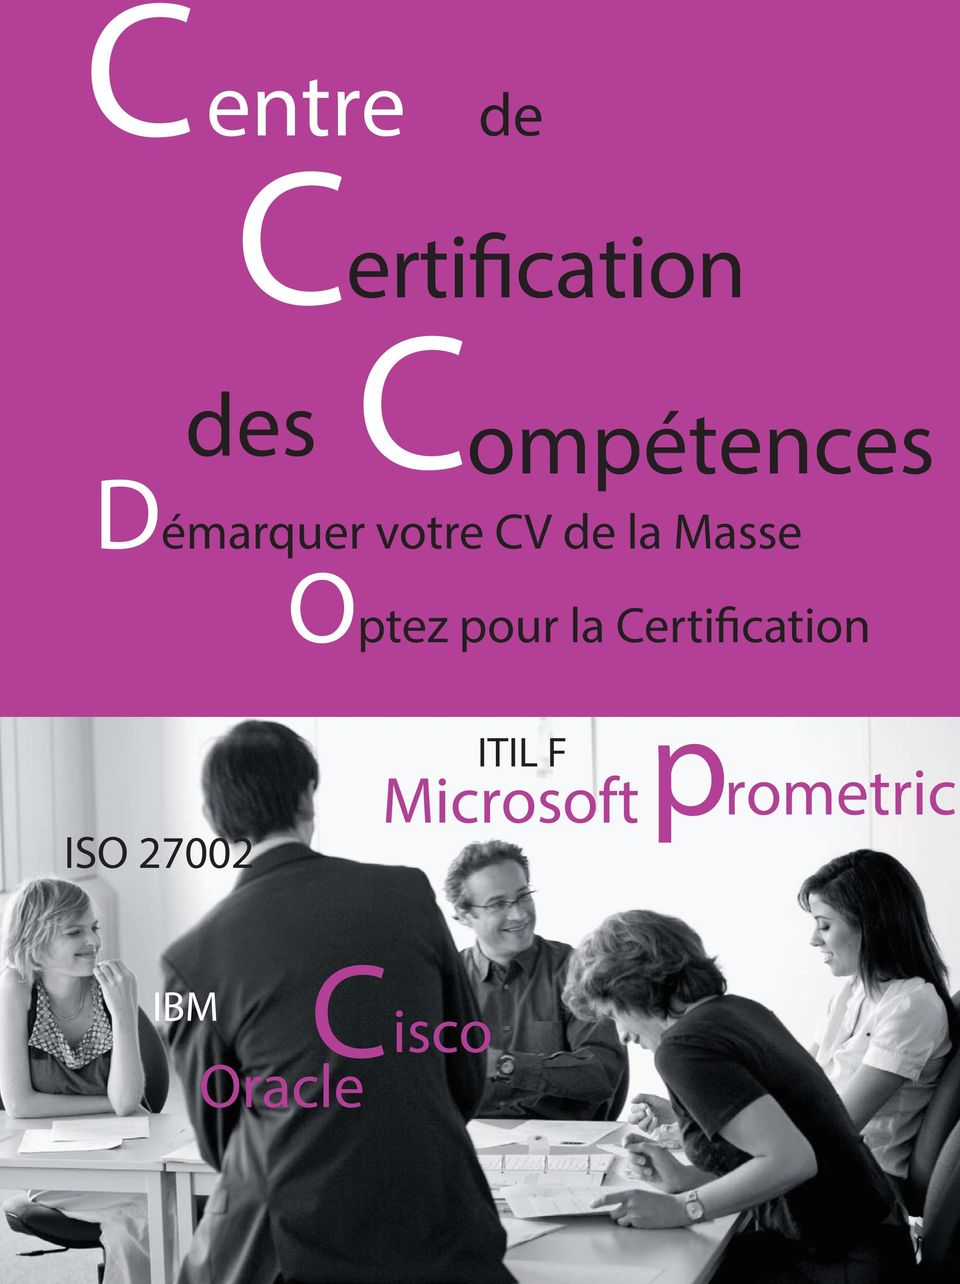 ISO 27002 ITIL F Microsoft prometric 23 IBM Cisco